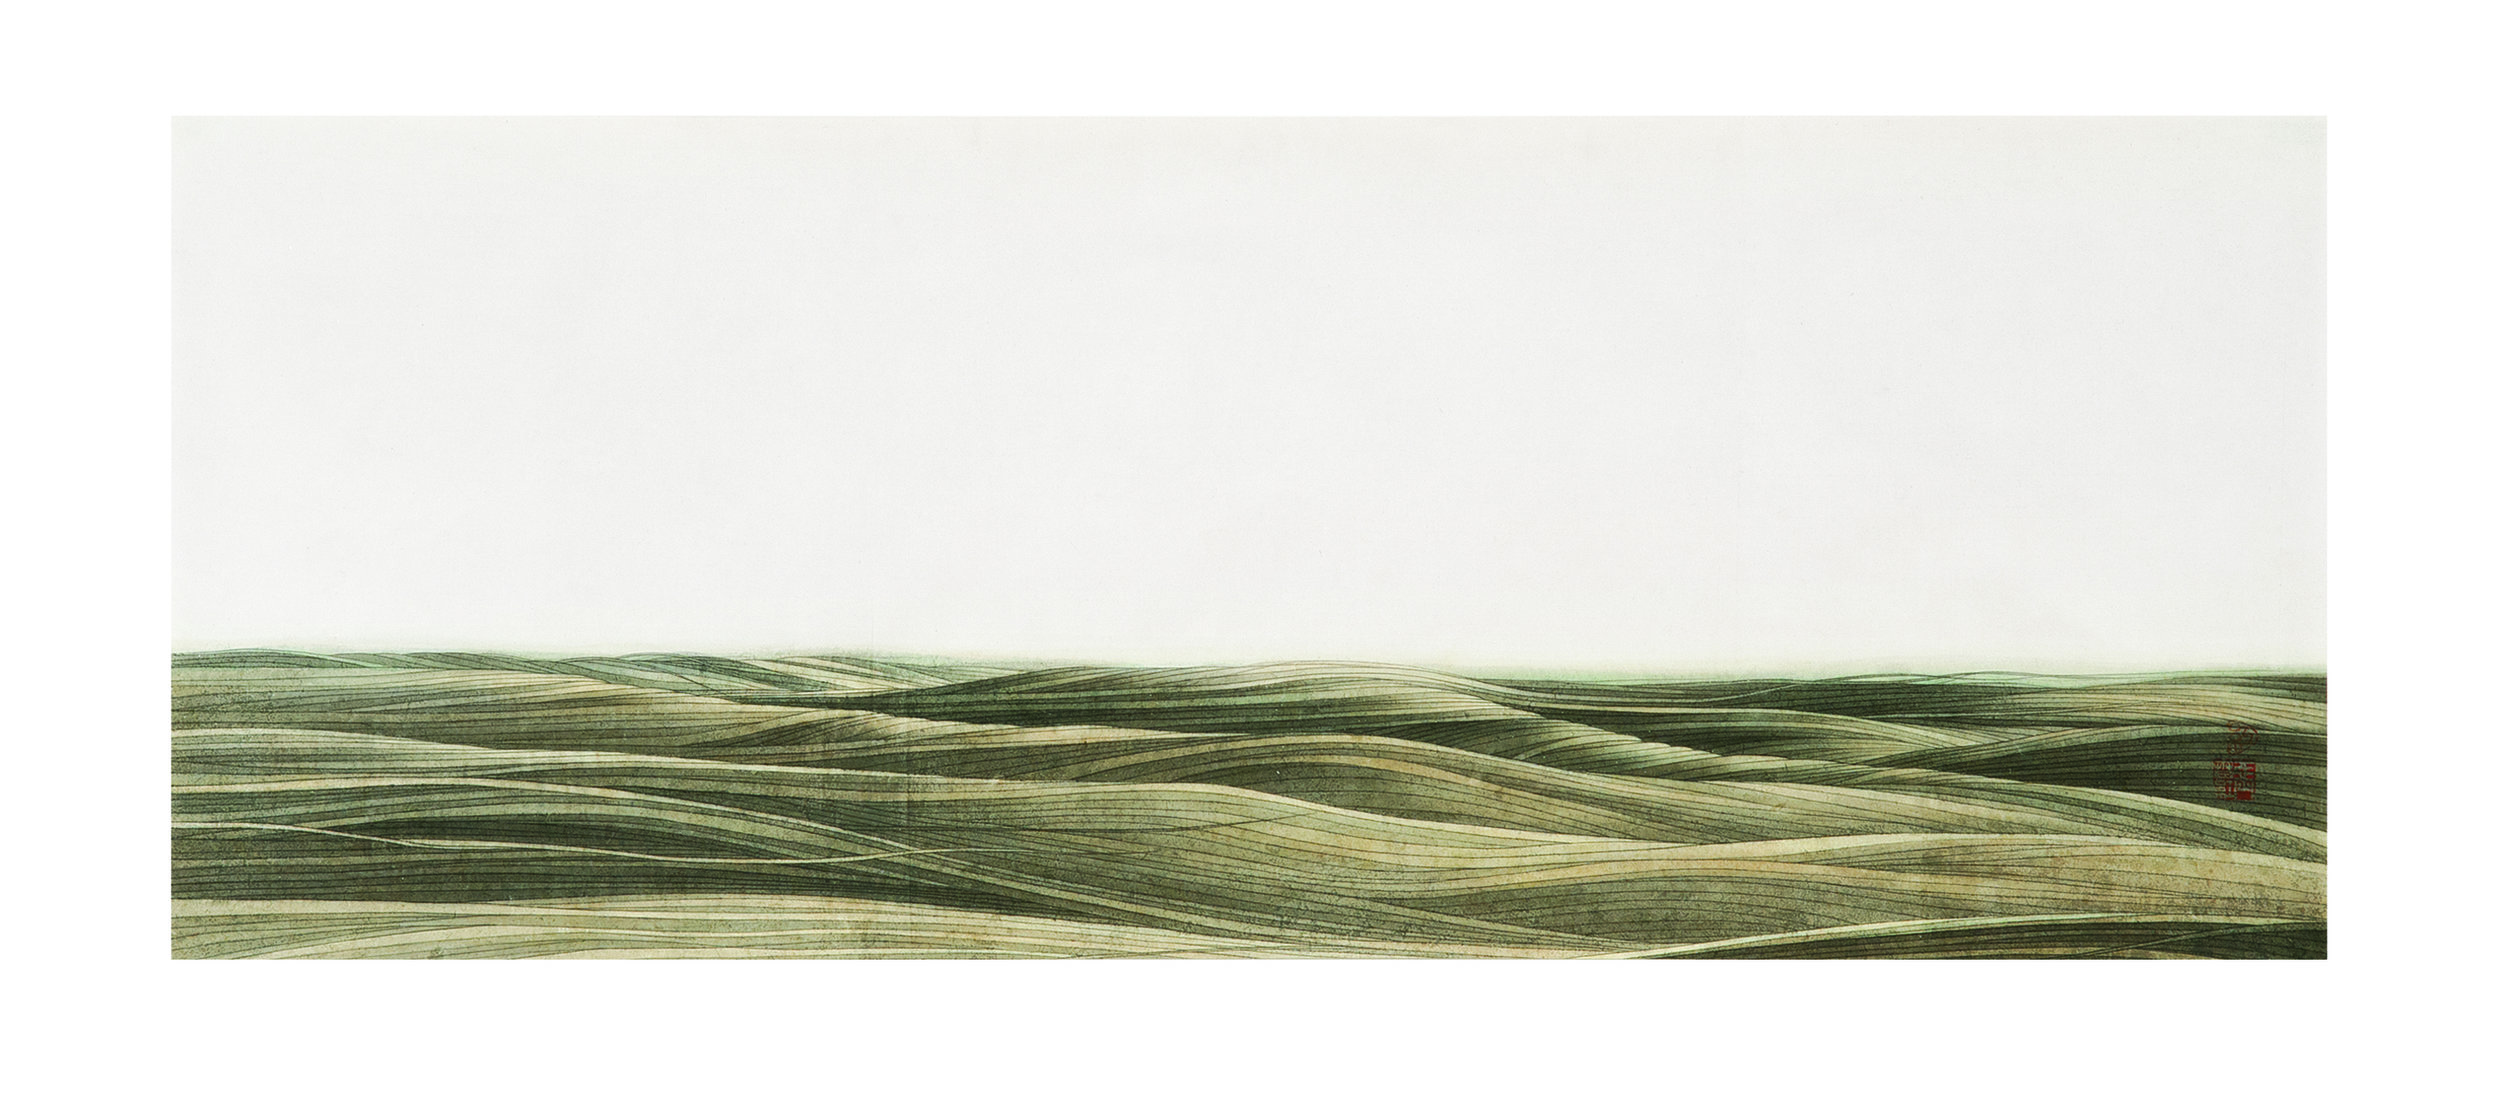 Hong Zhang. Flint Hairs#1. Ink on rice paper. 18in x 48in. 2012.